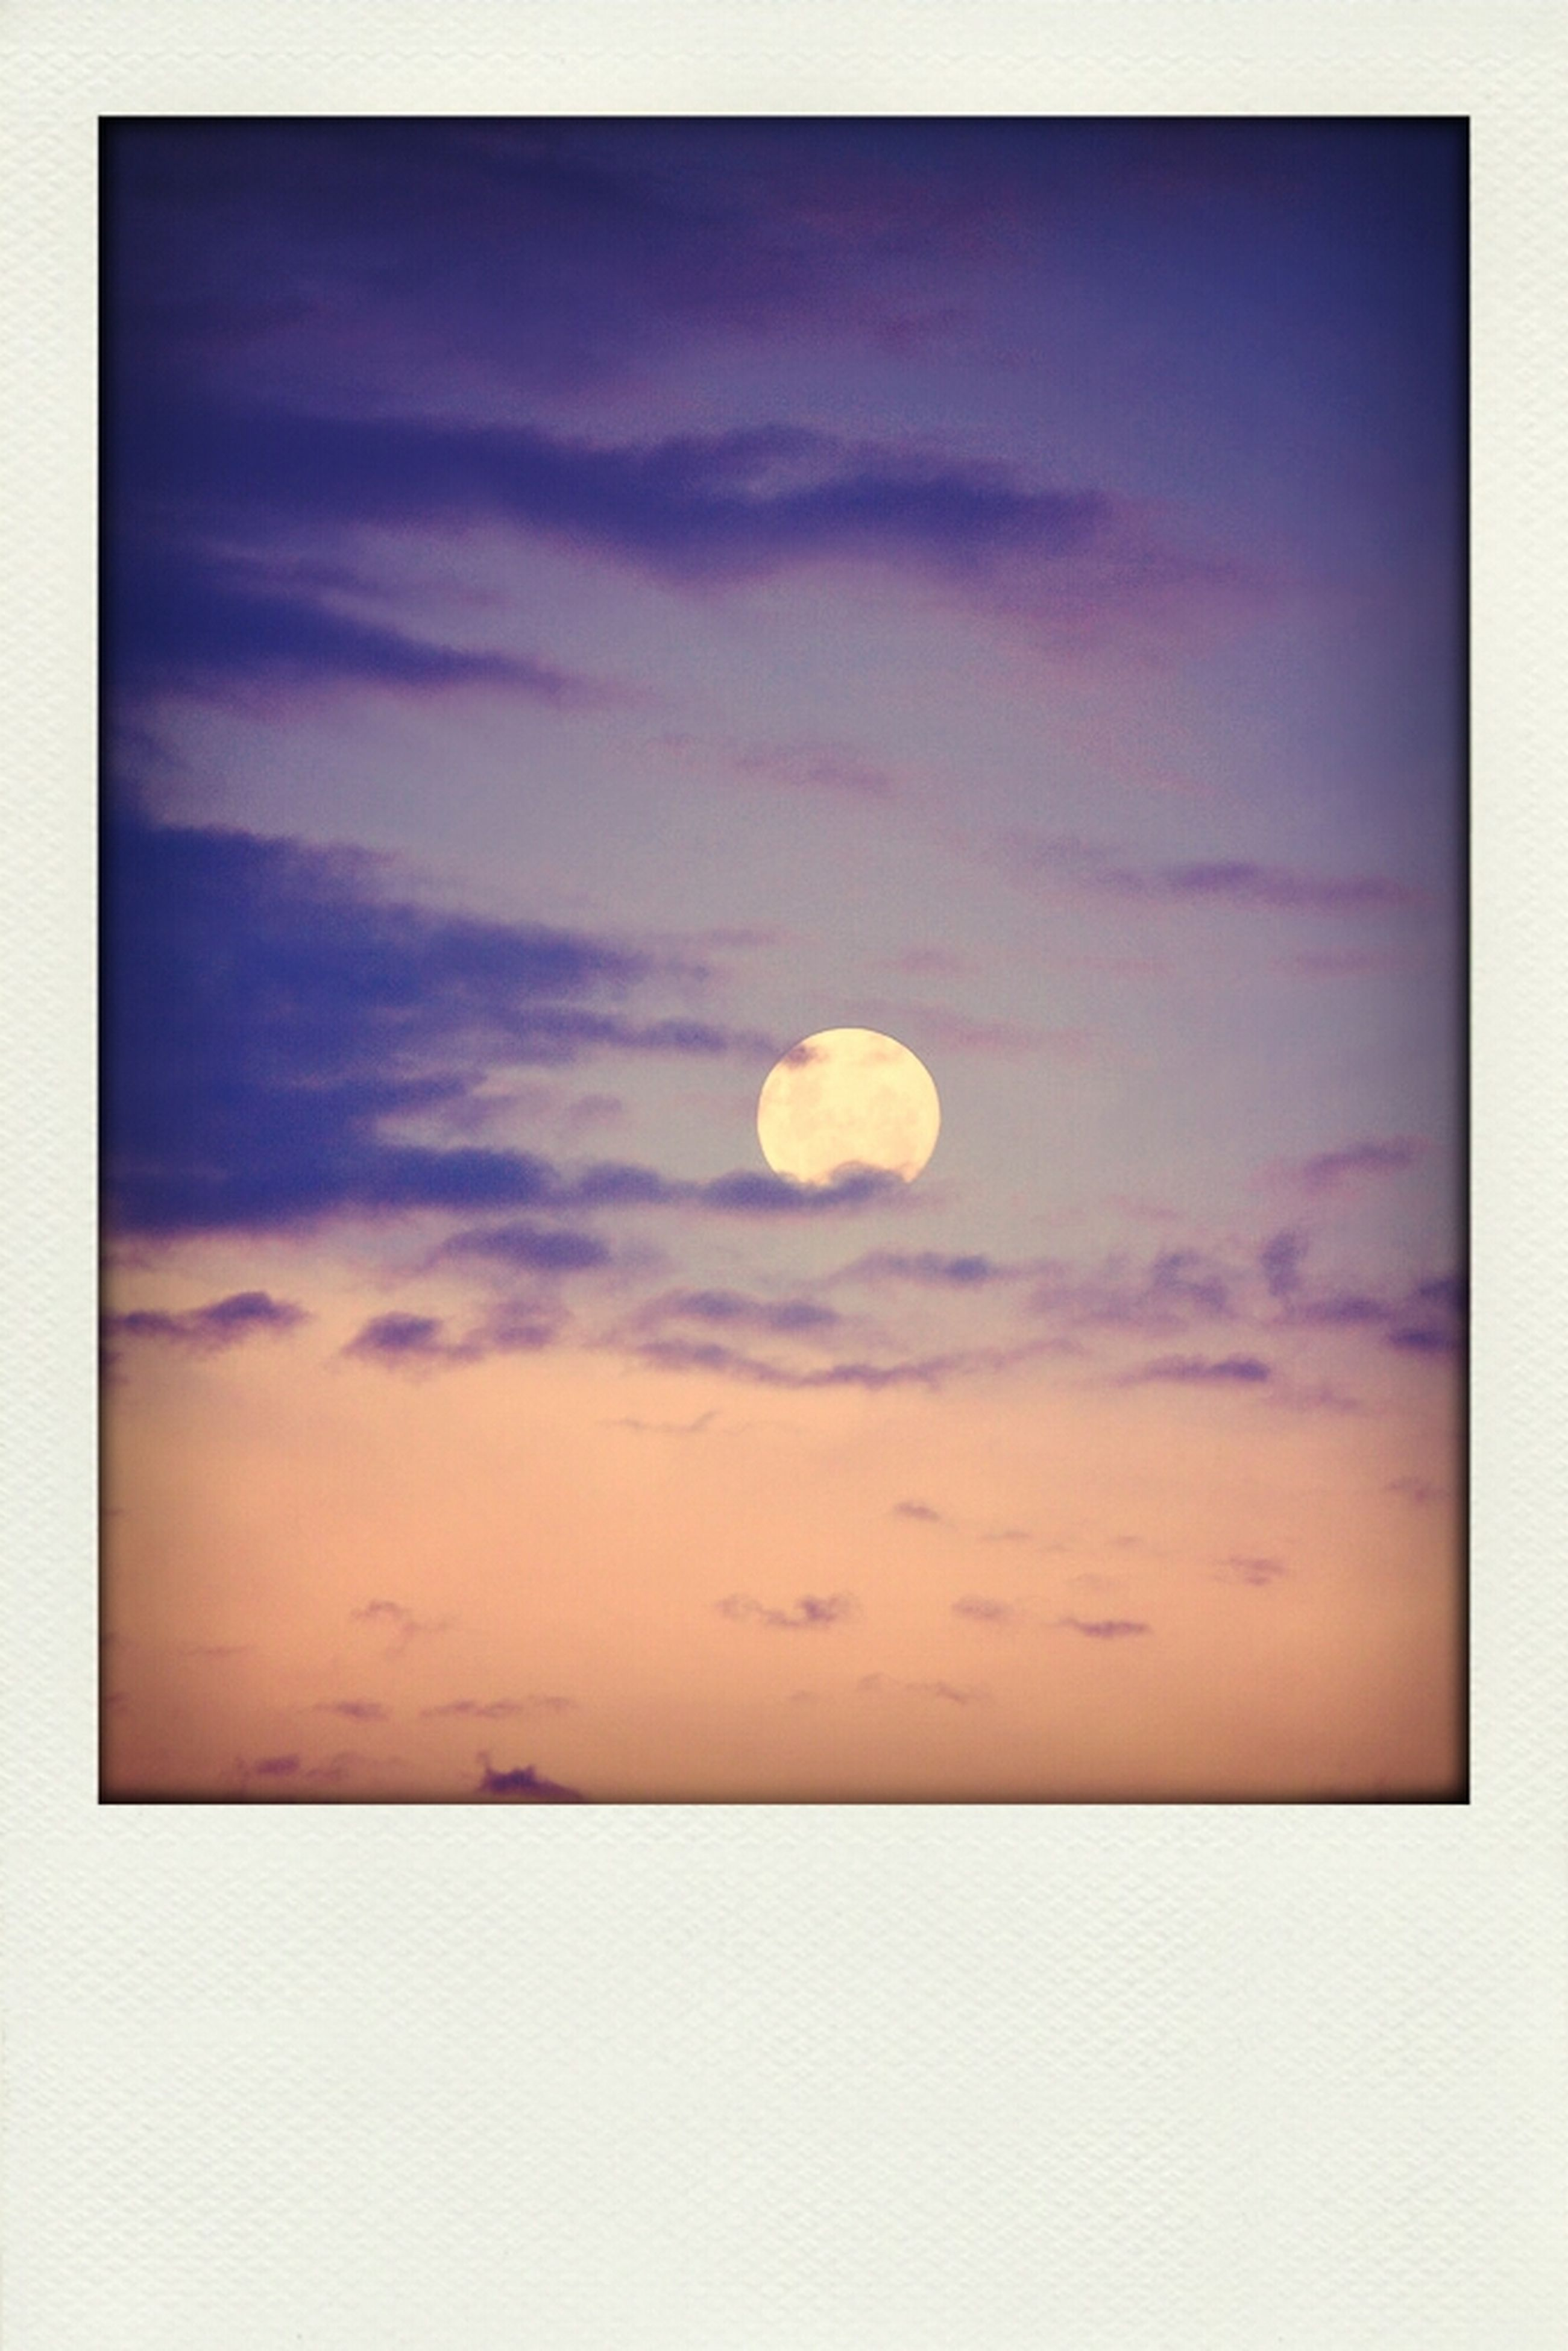 sky, low angle view, scenics, beauty in nature, circle, cloud - sky, moon, transfer print, tranquility, tranquil scene, nature, sky only, auto post production filter, idyllic, copy space, cloud, cloudy, outdoors, astronomy, no people